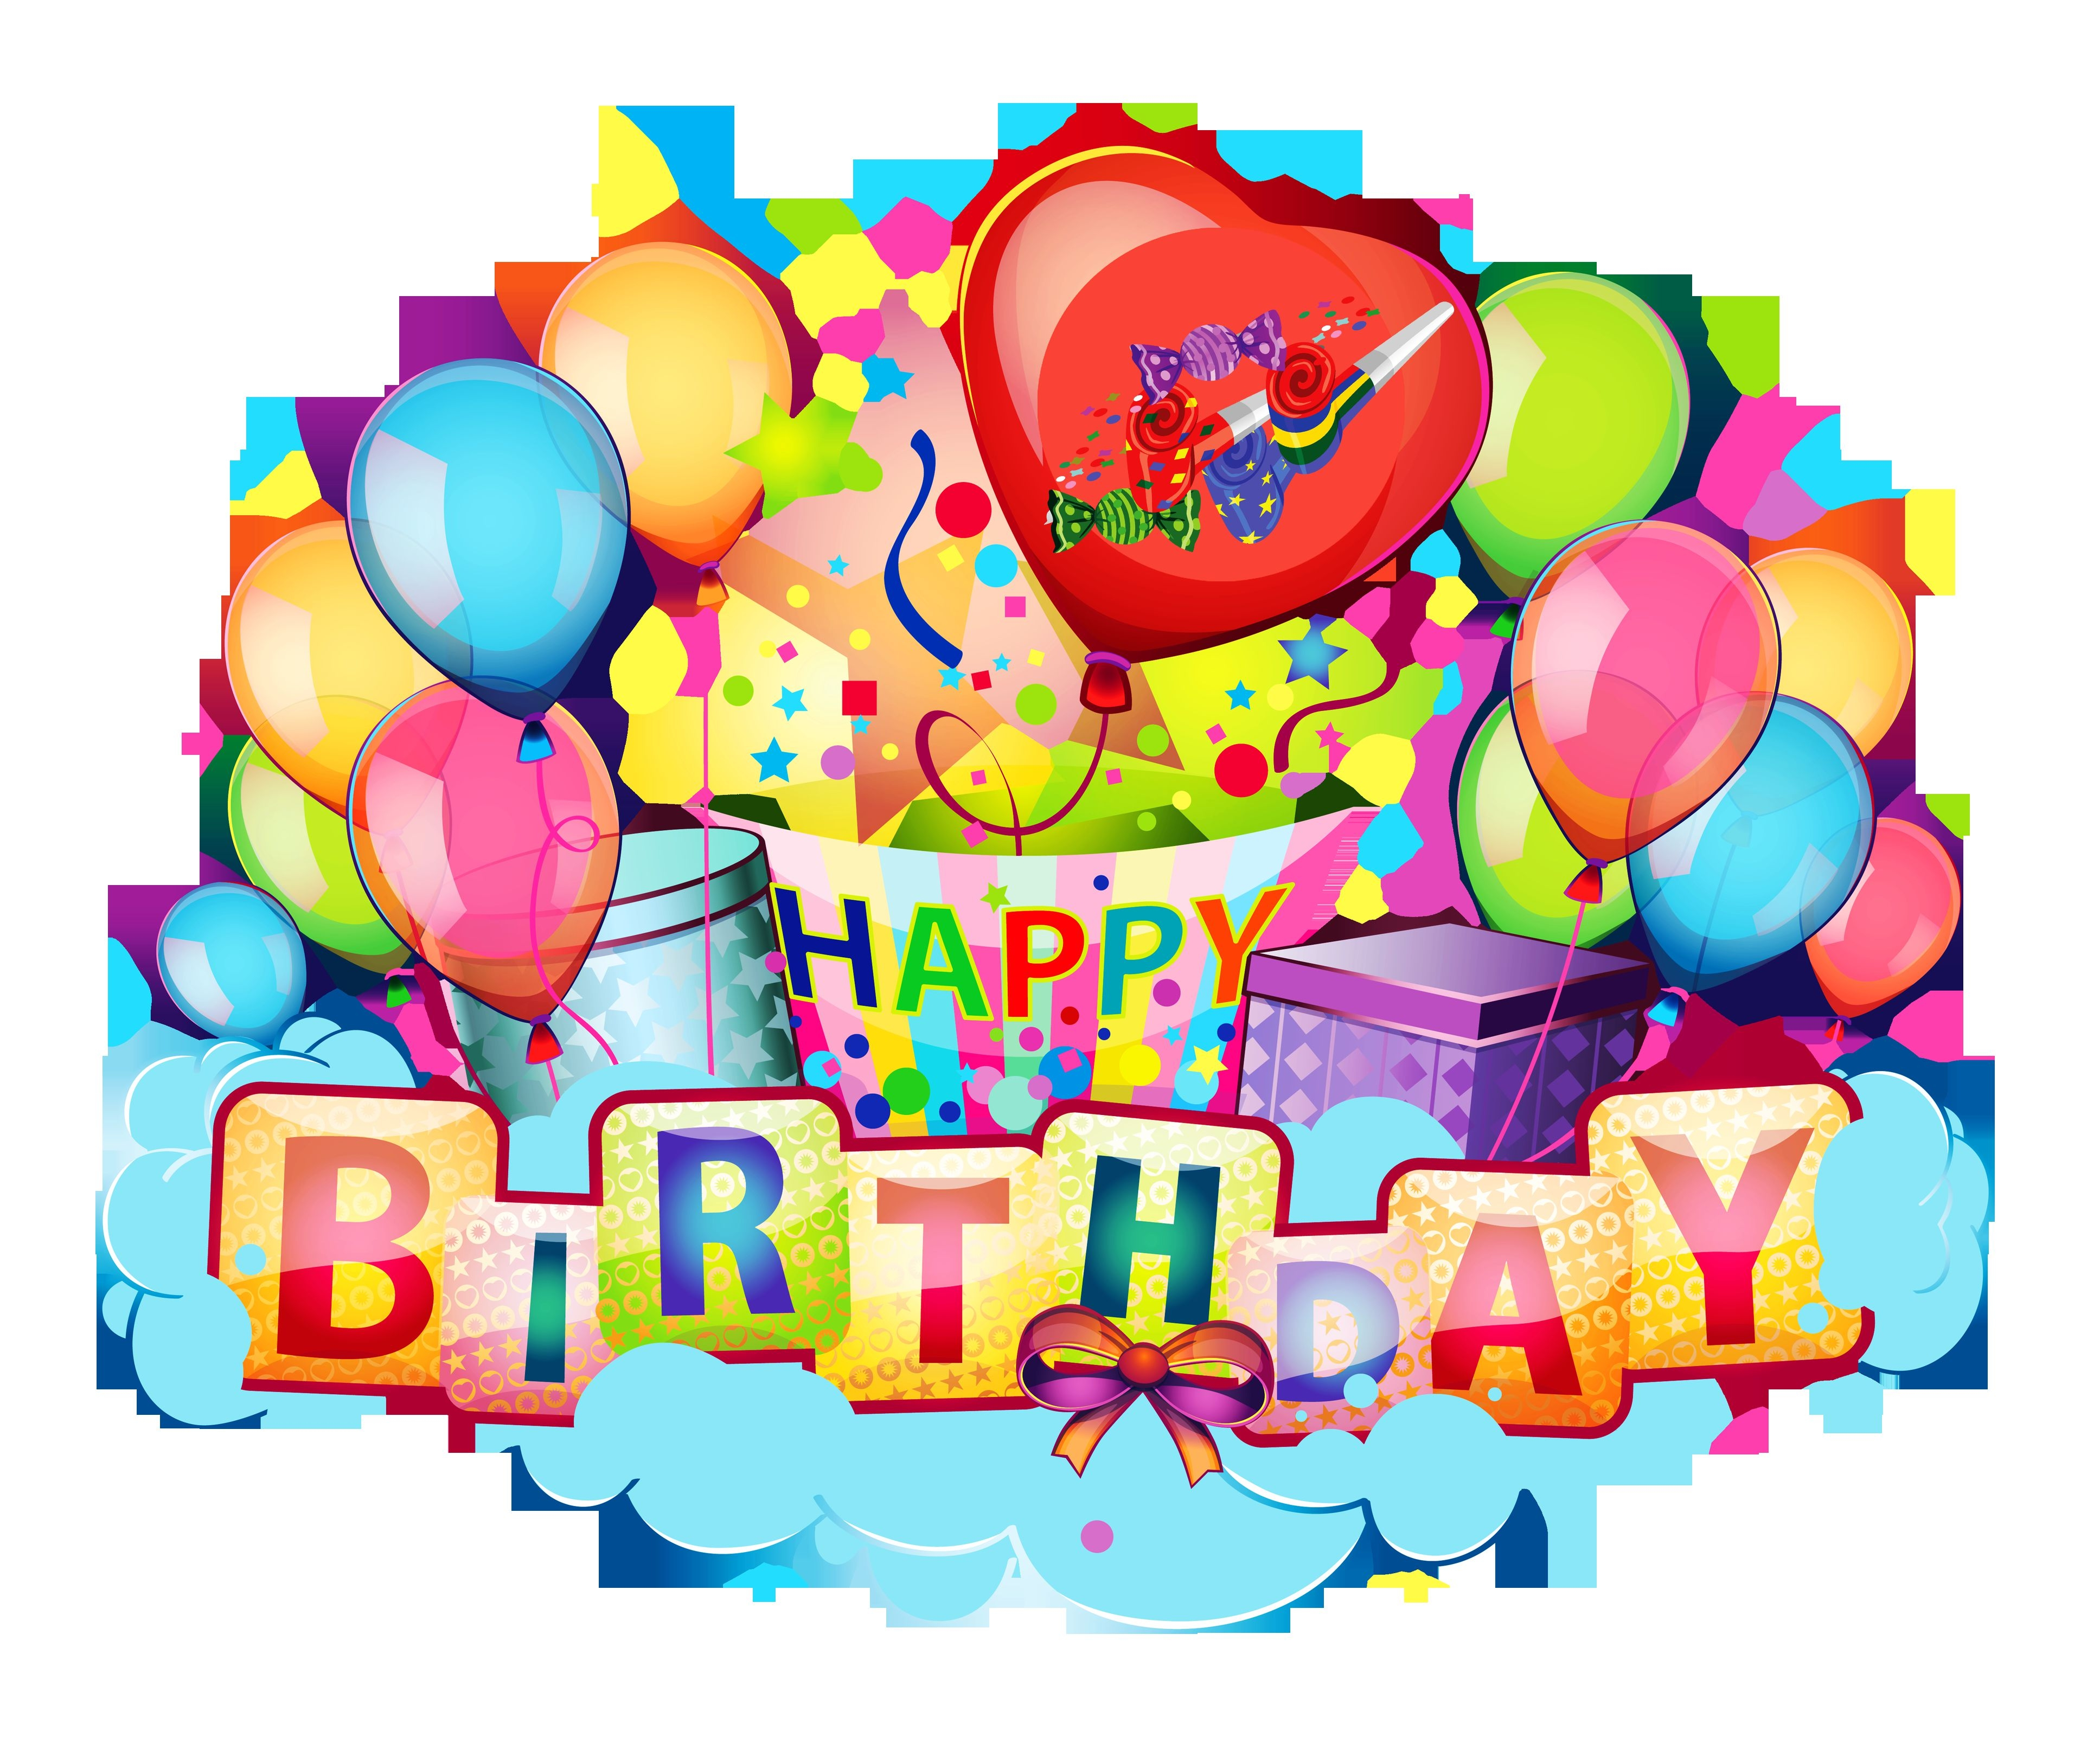 Birthday clipart for facebook jpg free Happy birthday clipart for facebook – Gclipart.com jpg free